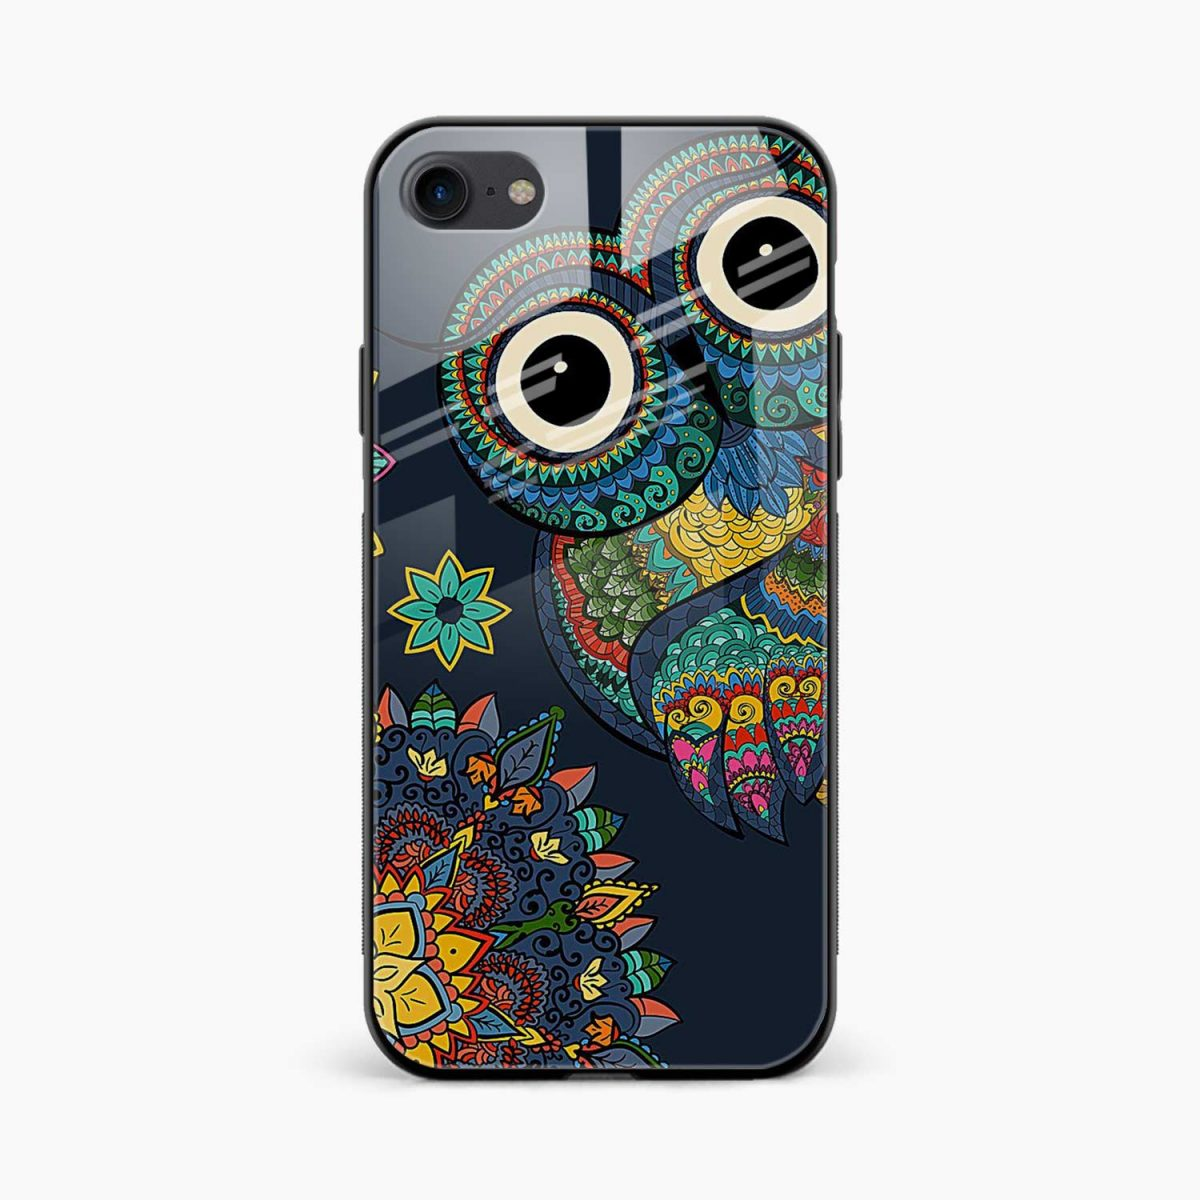 owl eyes front view apple iphone 6 7 8 se back cover